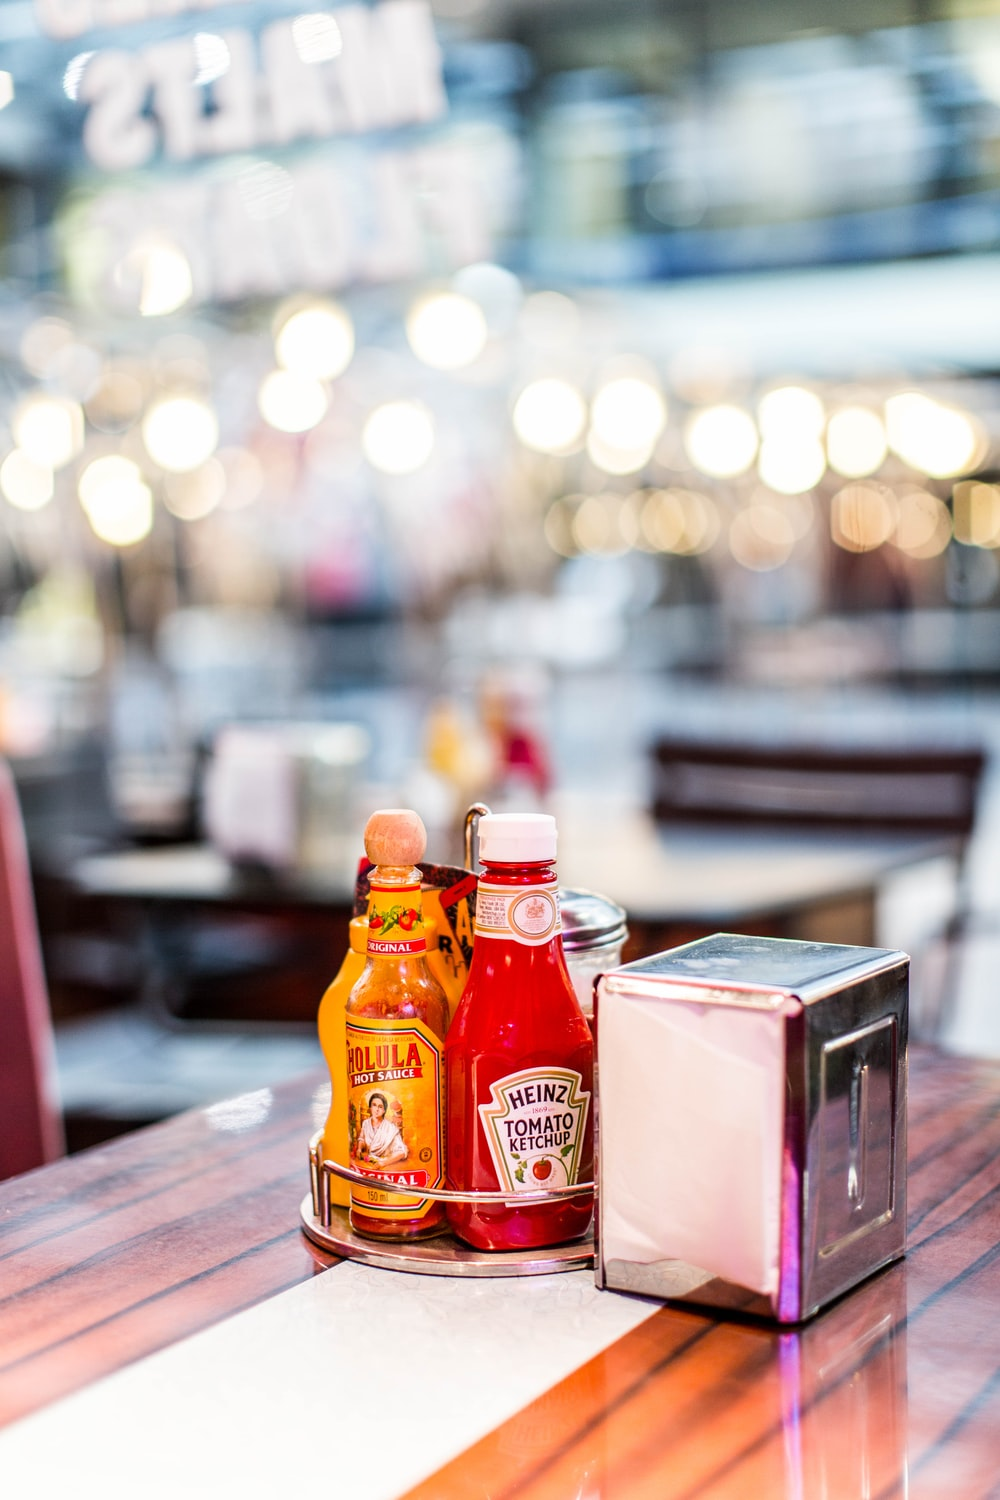 Heinz tomato ketchup bottle in shallow focus photography